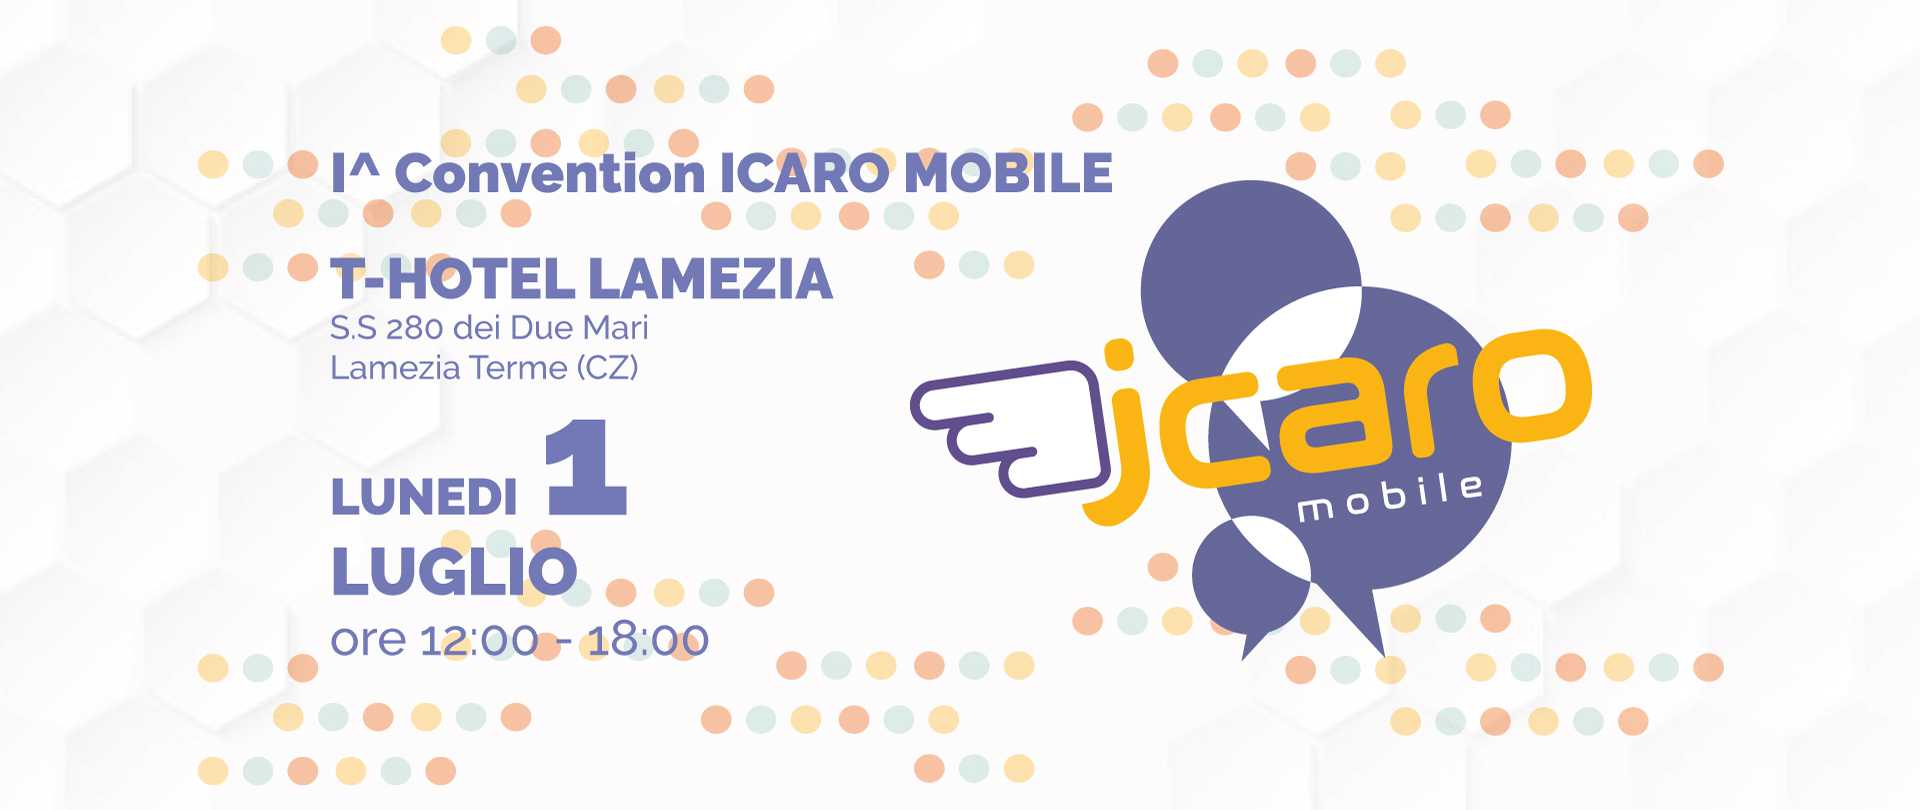 Ram Consulting alla 1* Convention Icaro Mobile